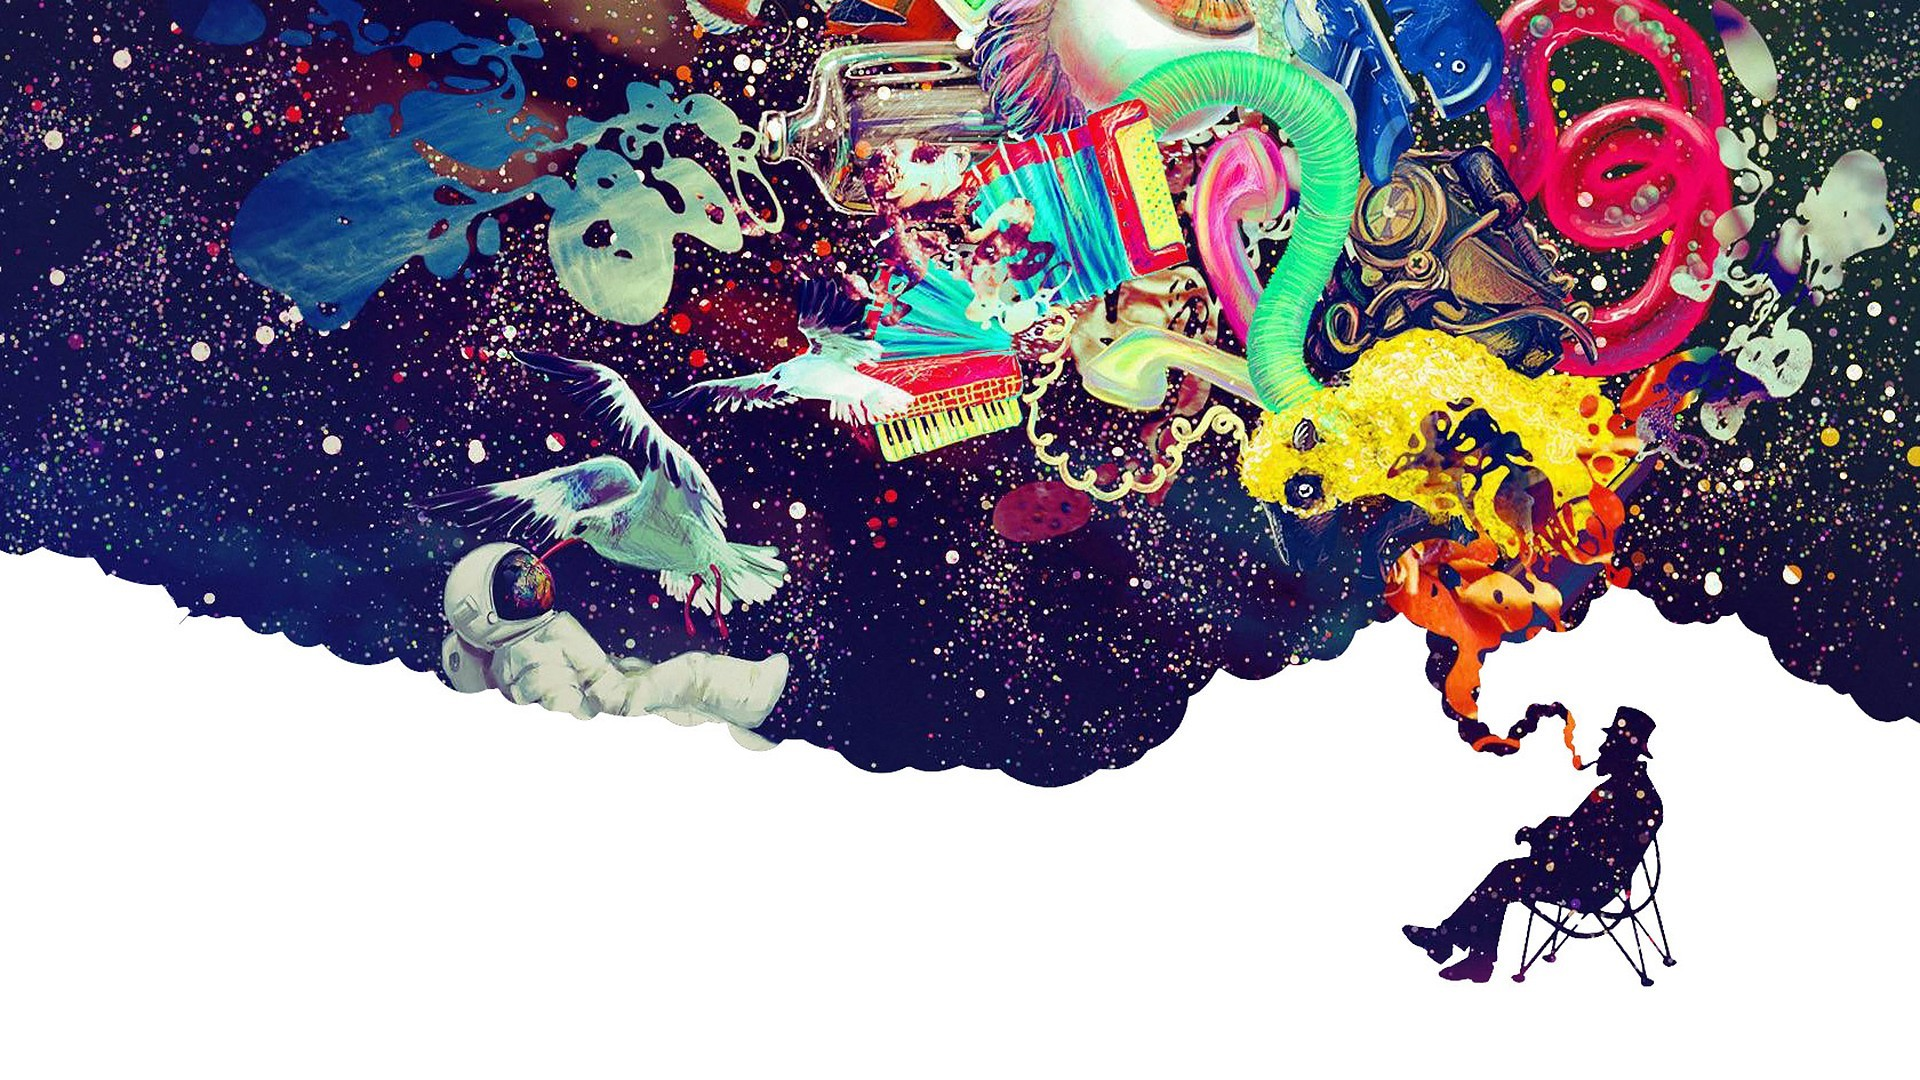 smoking smoke astronauts dreams colors upscaled – Wallpaper (#2890205) /  Wallbase.cc